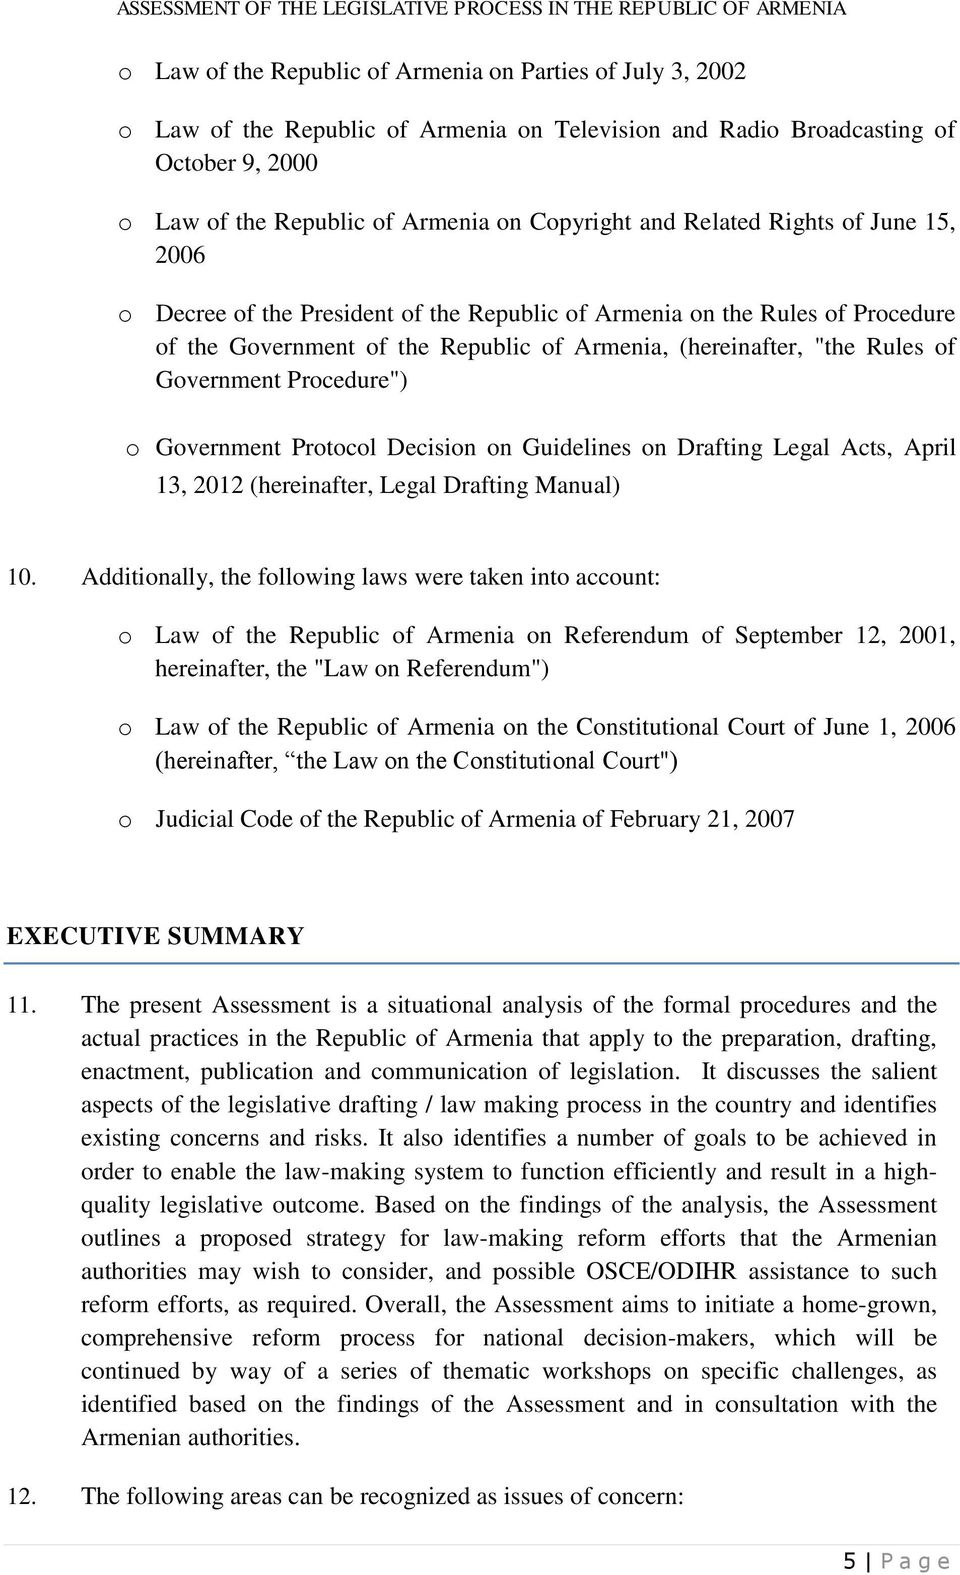 "Procedure"") o Government Protocol Decision on Guidelines on Drafting Legal Acts, April 13, 2012 (hereinafter, Legal Drafting Manual) 10."